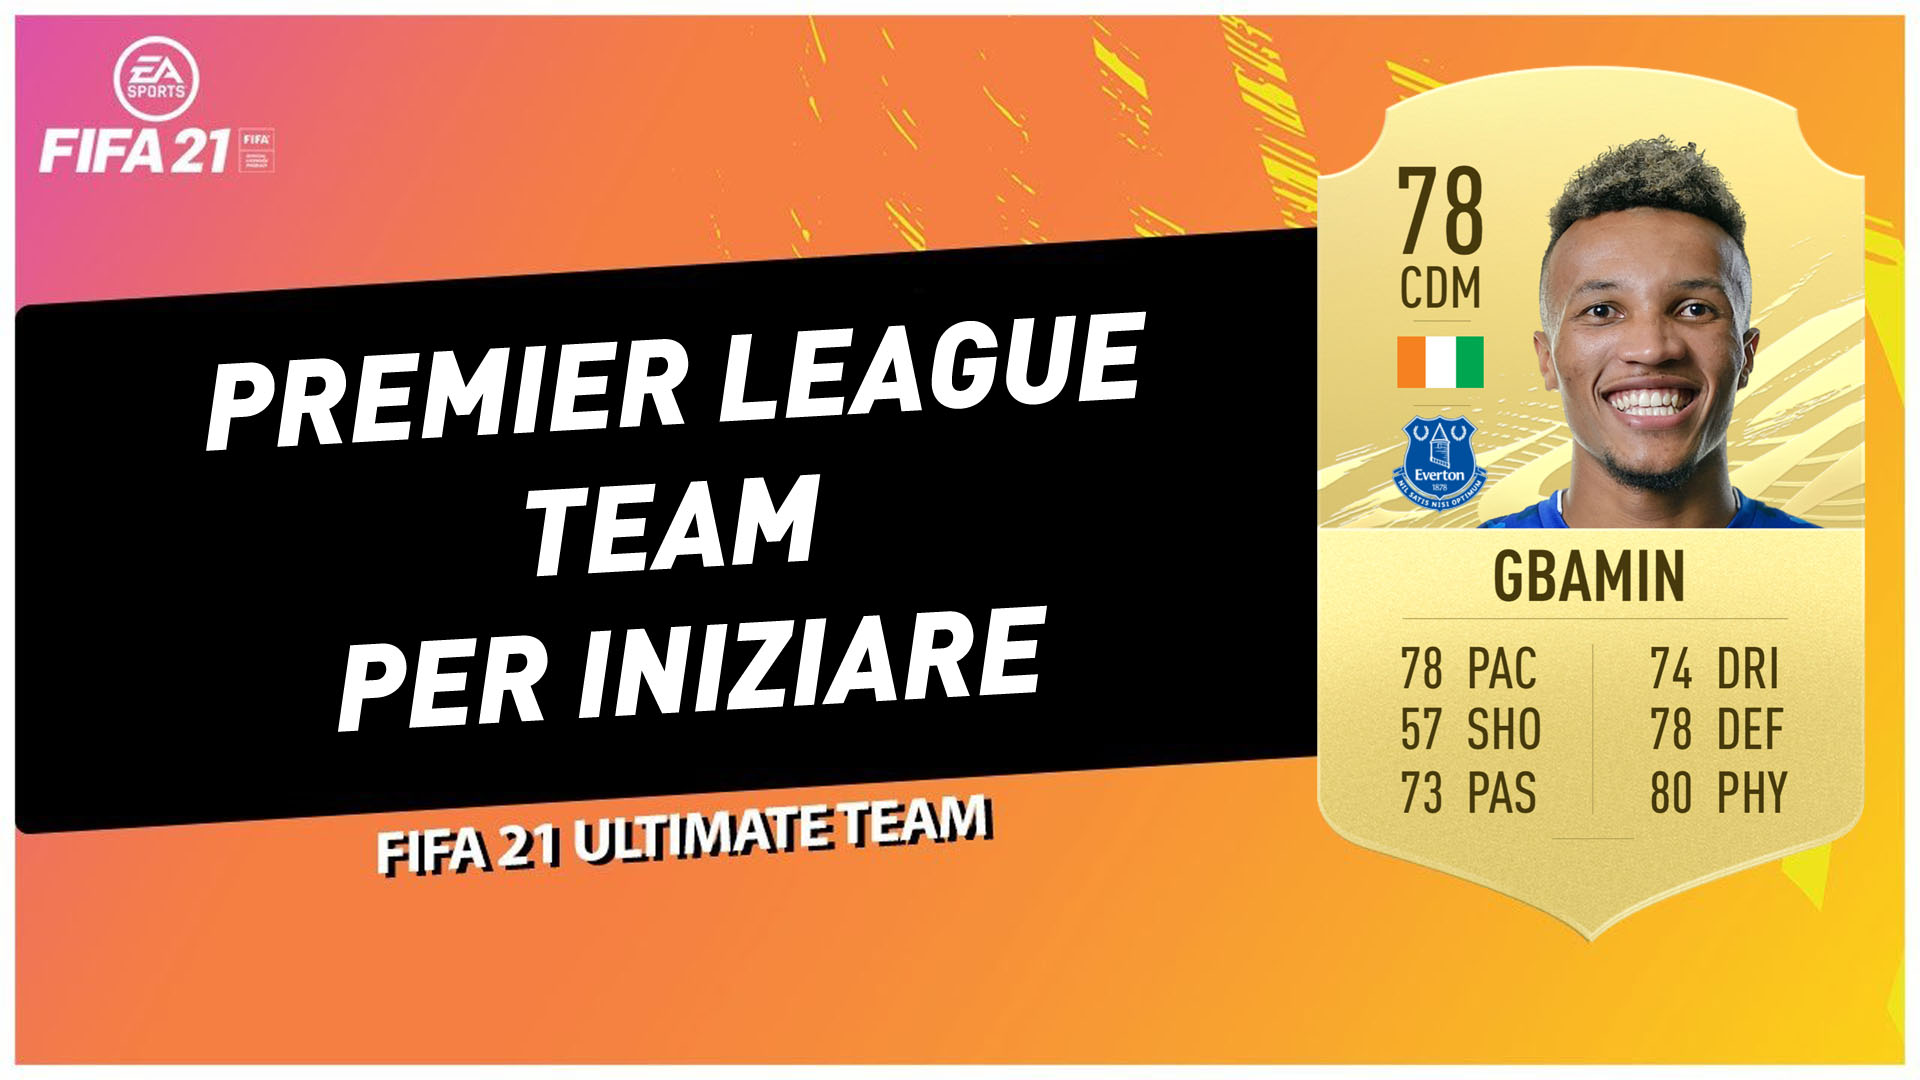 FIFA 21 Ultimate Team Premier League